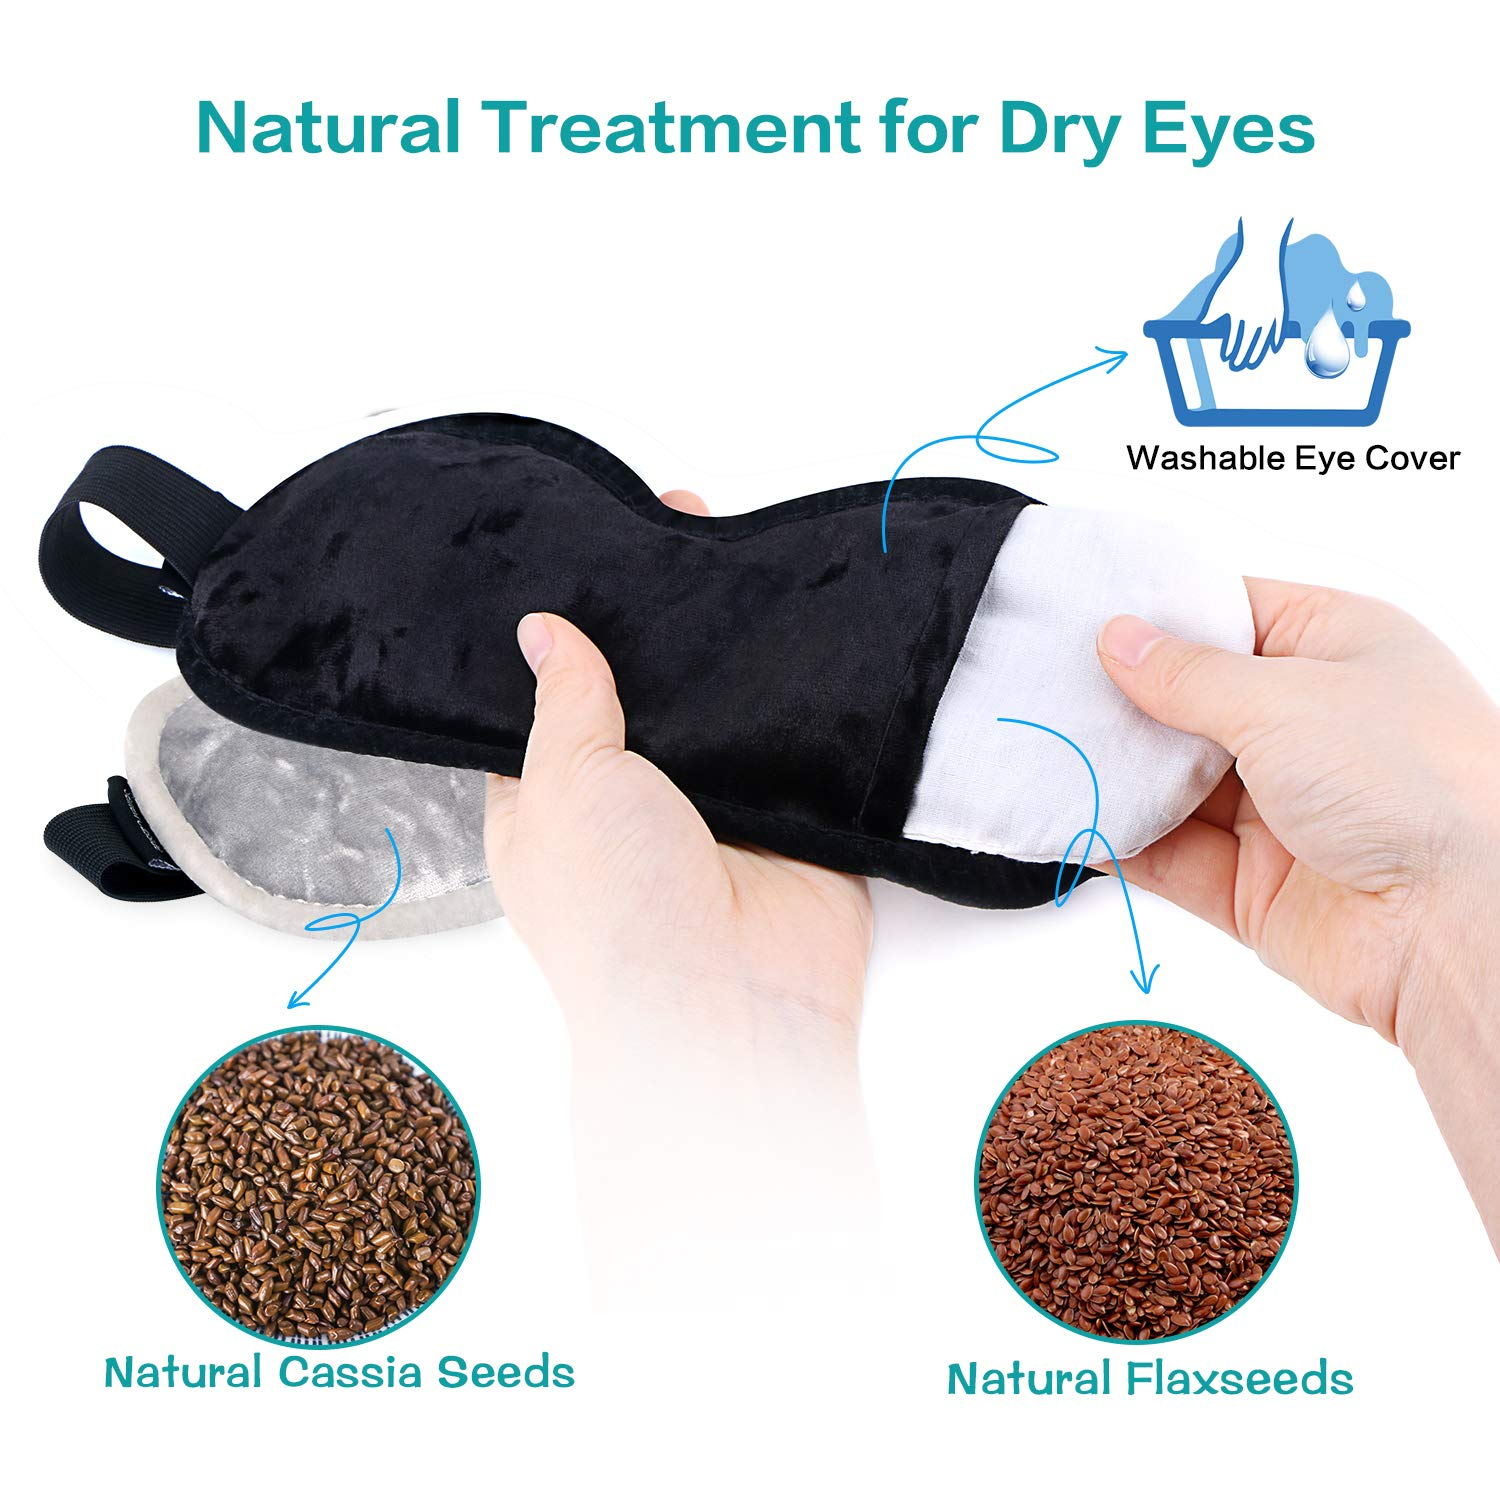 Moist Heat Eye Compress for Dry Eyes(2 Packs),ProCIV Microwave Hot Eye Mask with Flaxseed Cassia for Eye Relief,Spa,Blepharitis Therapy-Washable,Reusable